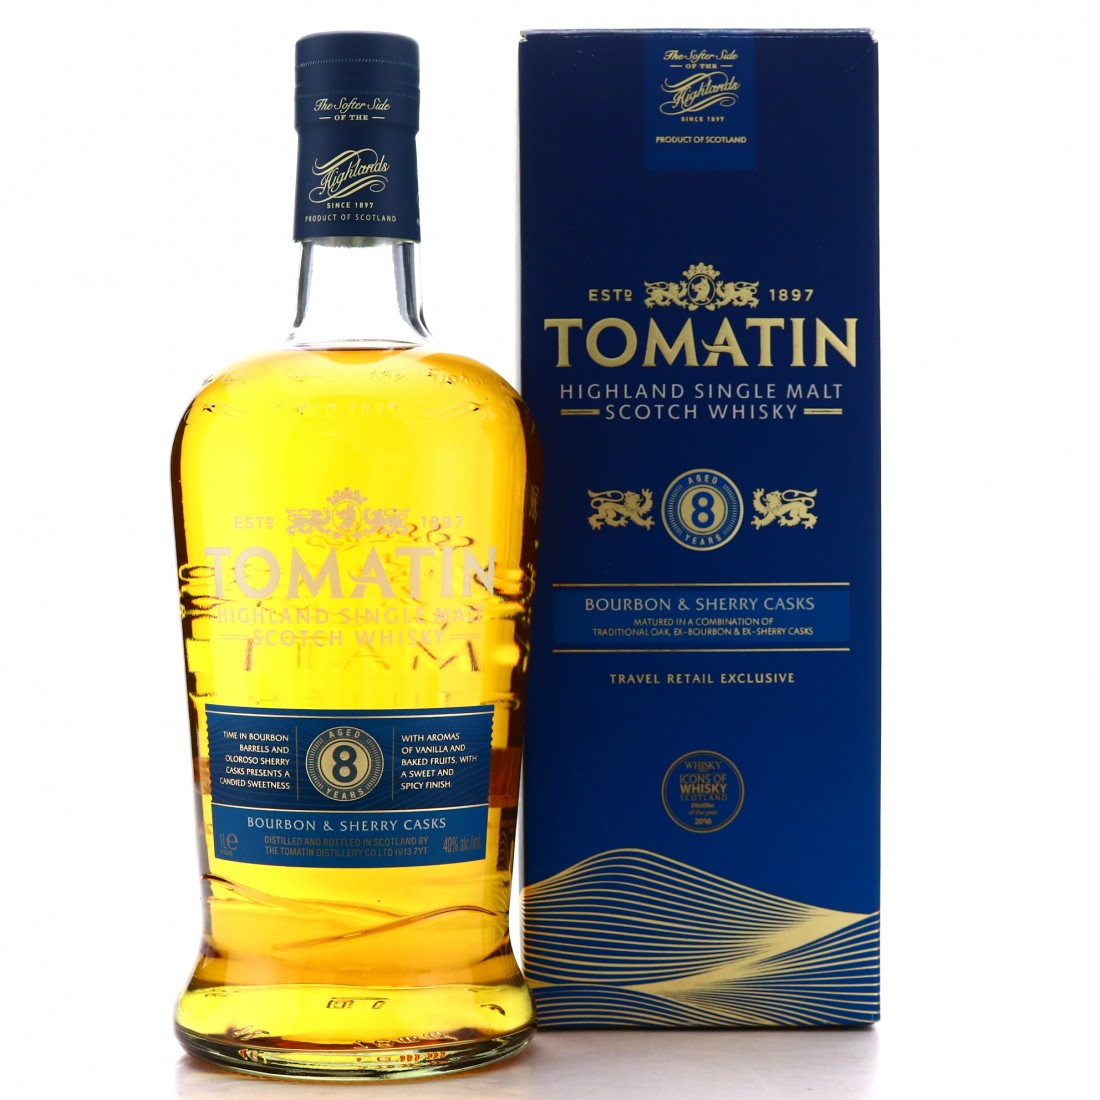 Tomatin 8 Year Old Bourbon & Sherry Casks 1 Litre